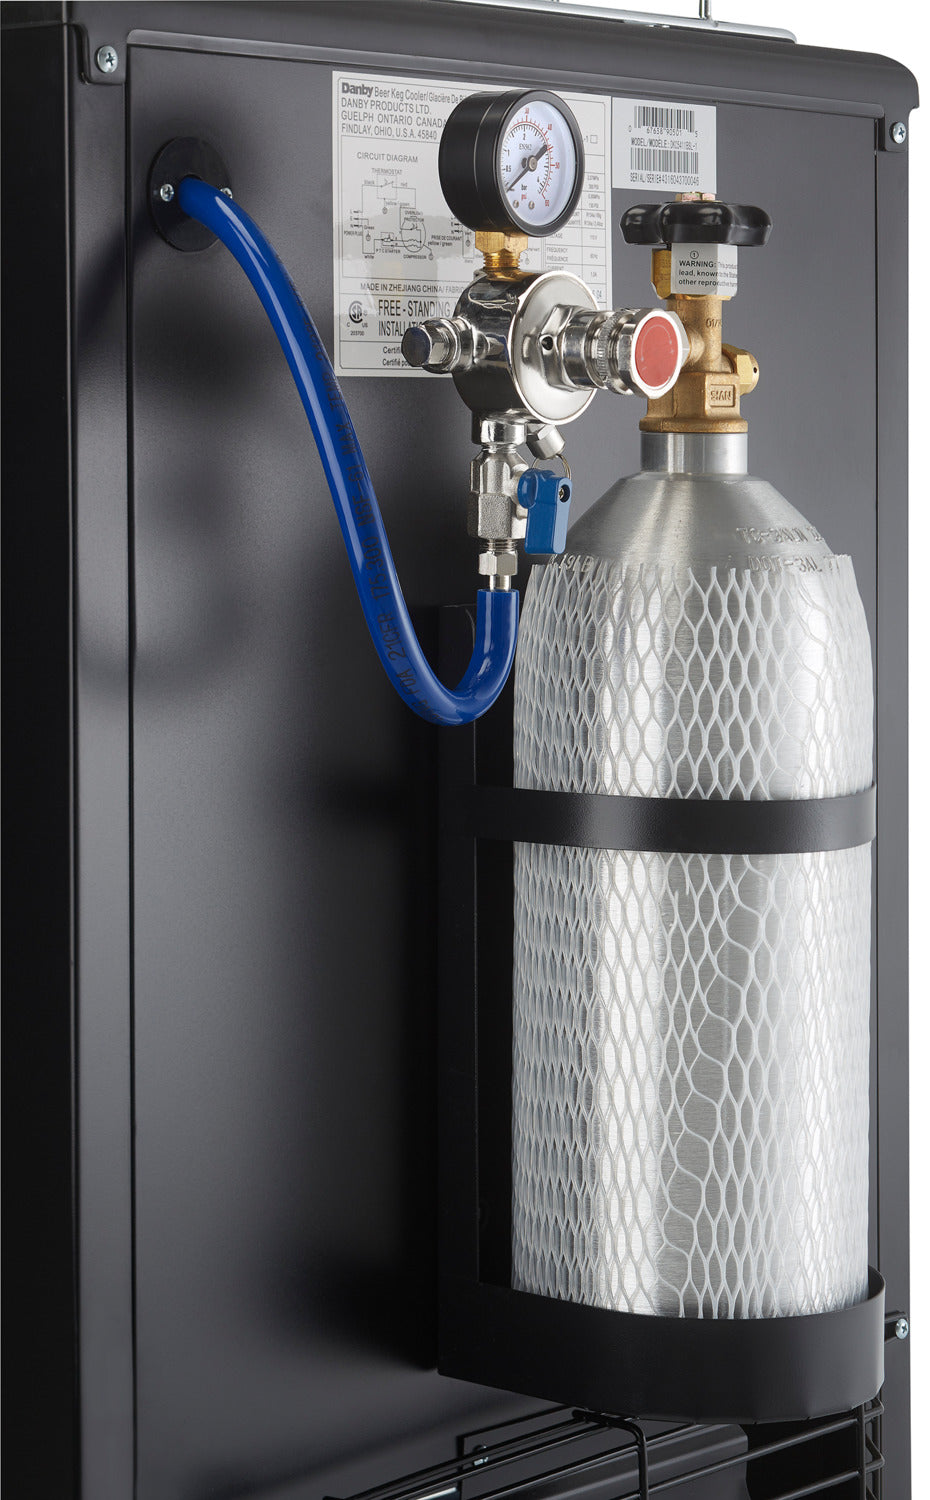 Danby Silver Single Tap Keg Cooler 54 Cu Ft Dkc054a1bsldb Wiring Diagram For Beer Previous Next